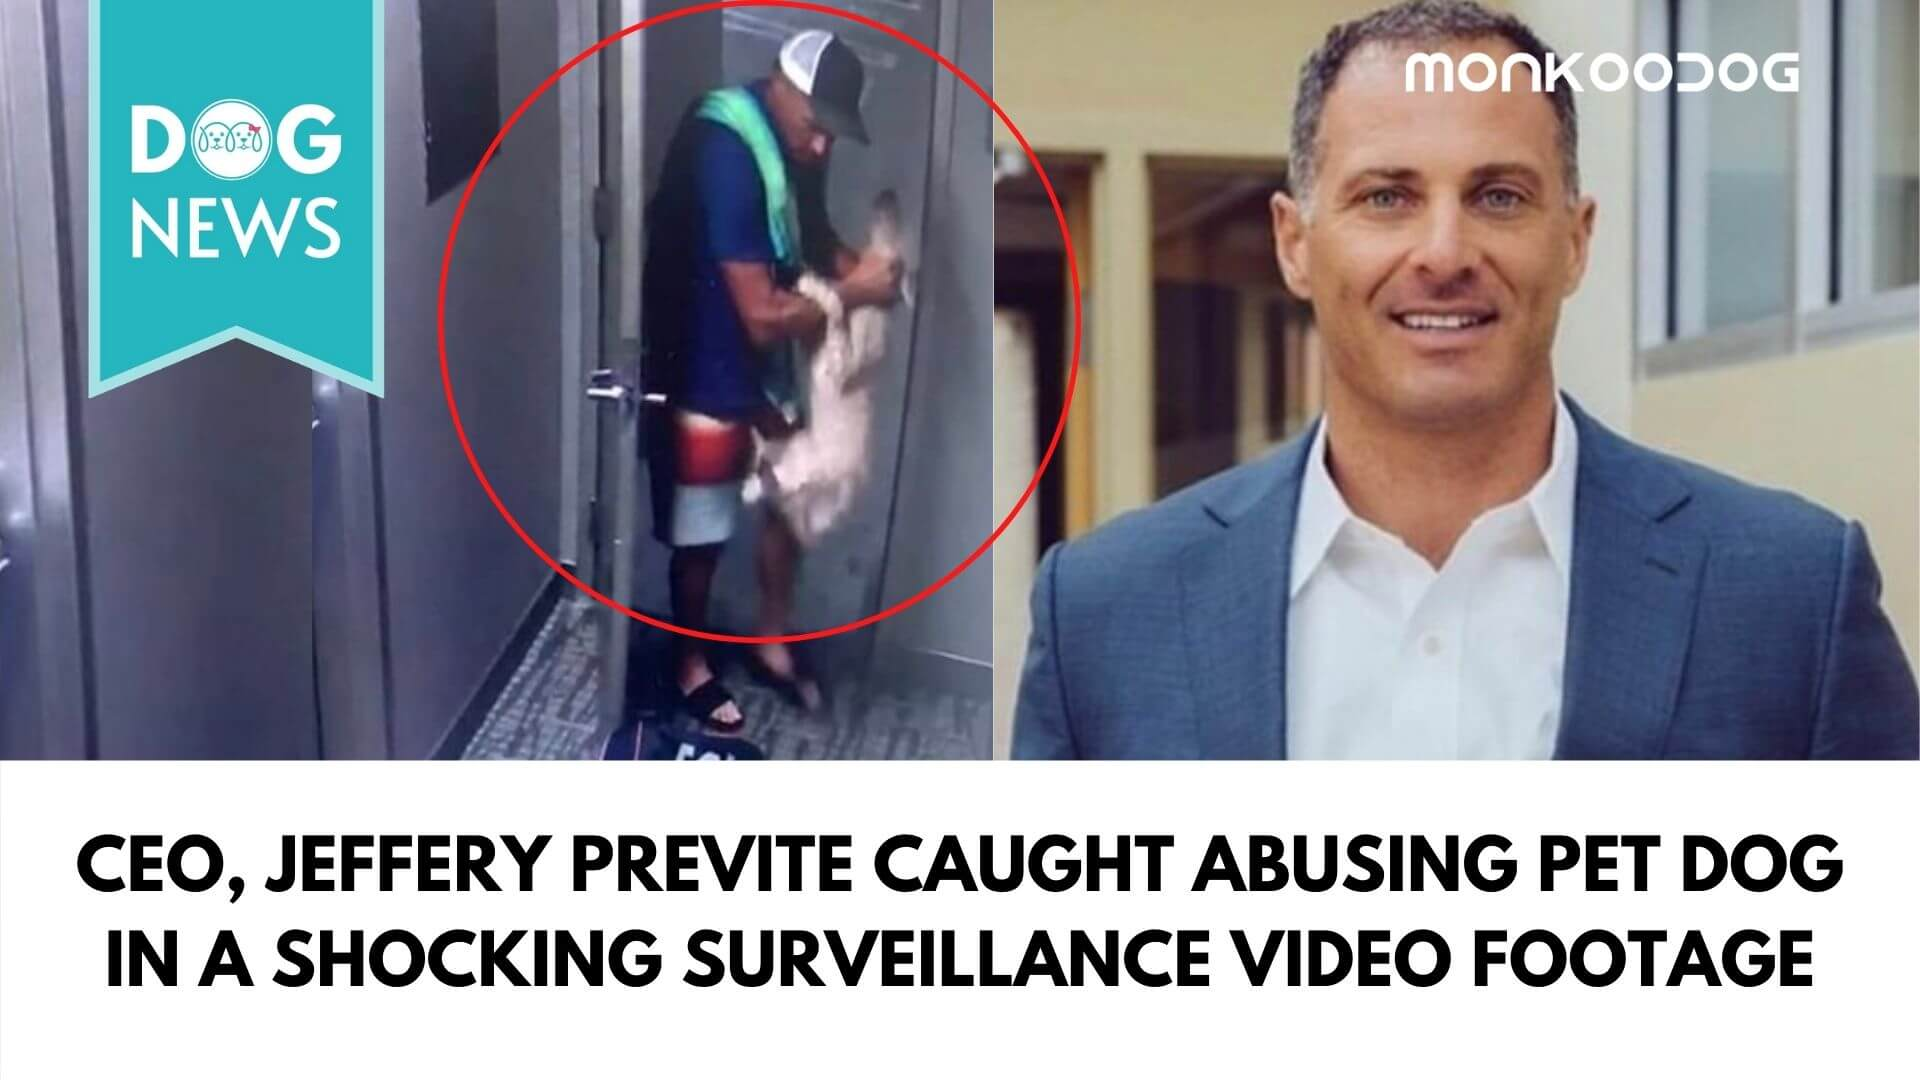 CEO, Jeffery Previte caught abusing pet dog in a shocking surveillance video footage